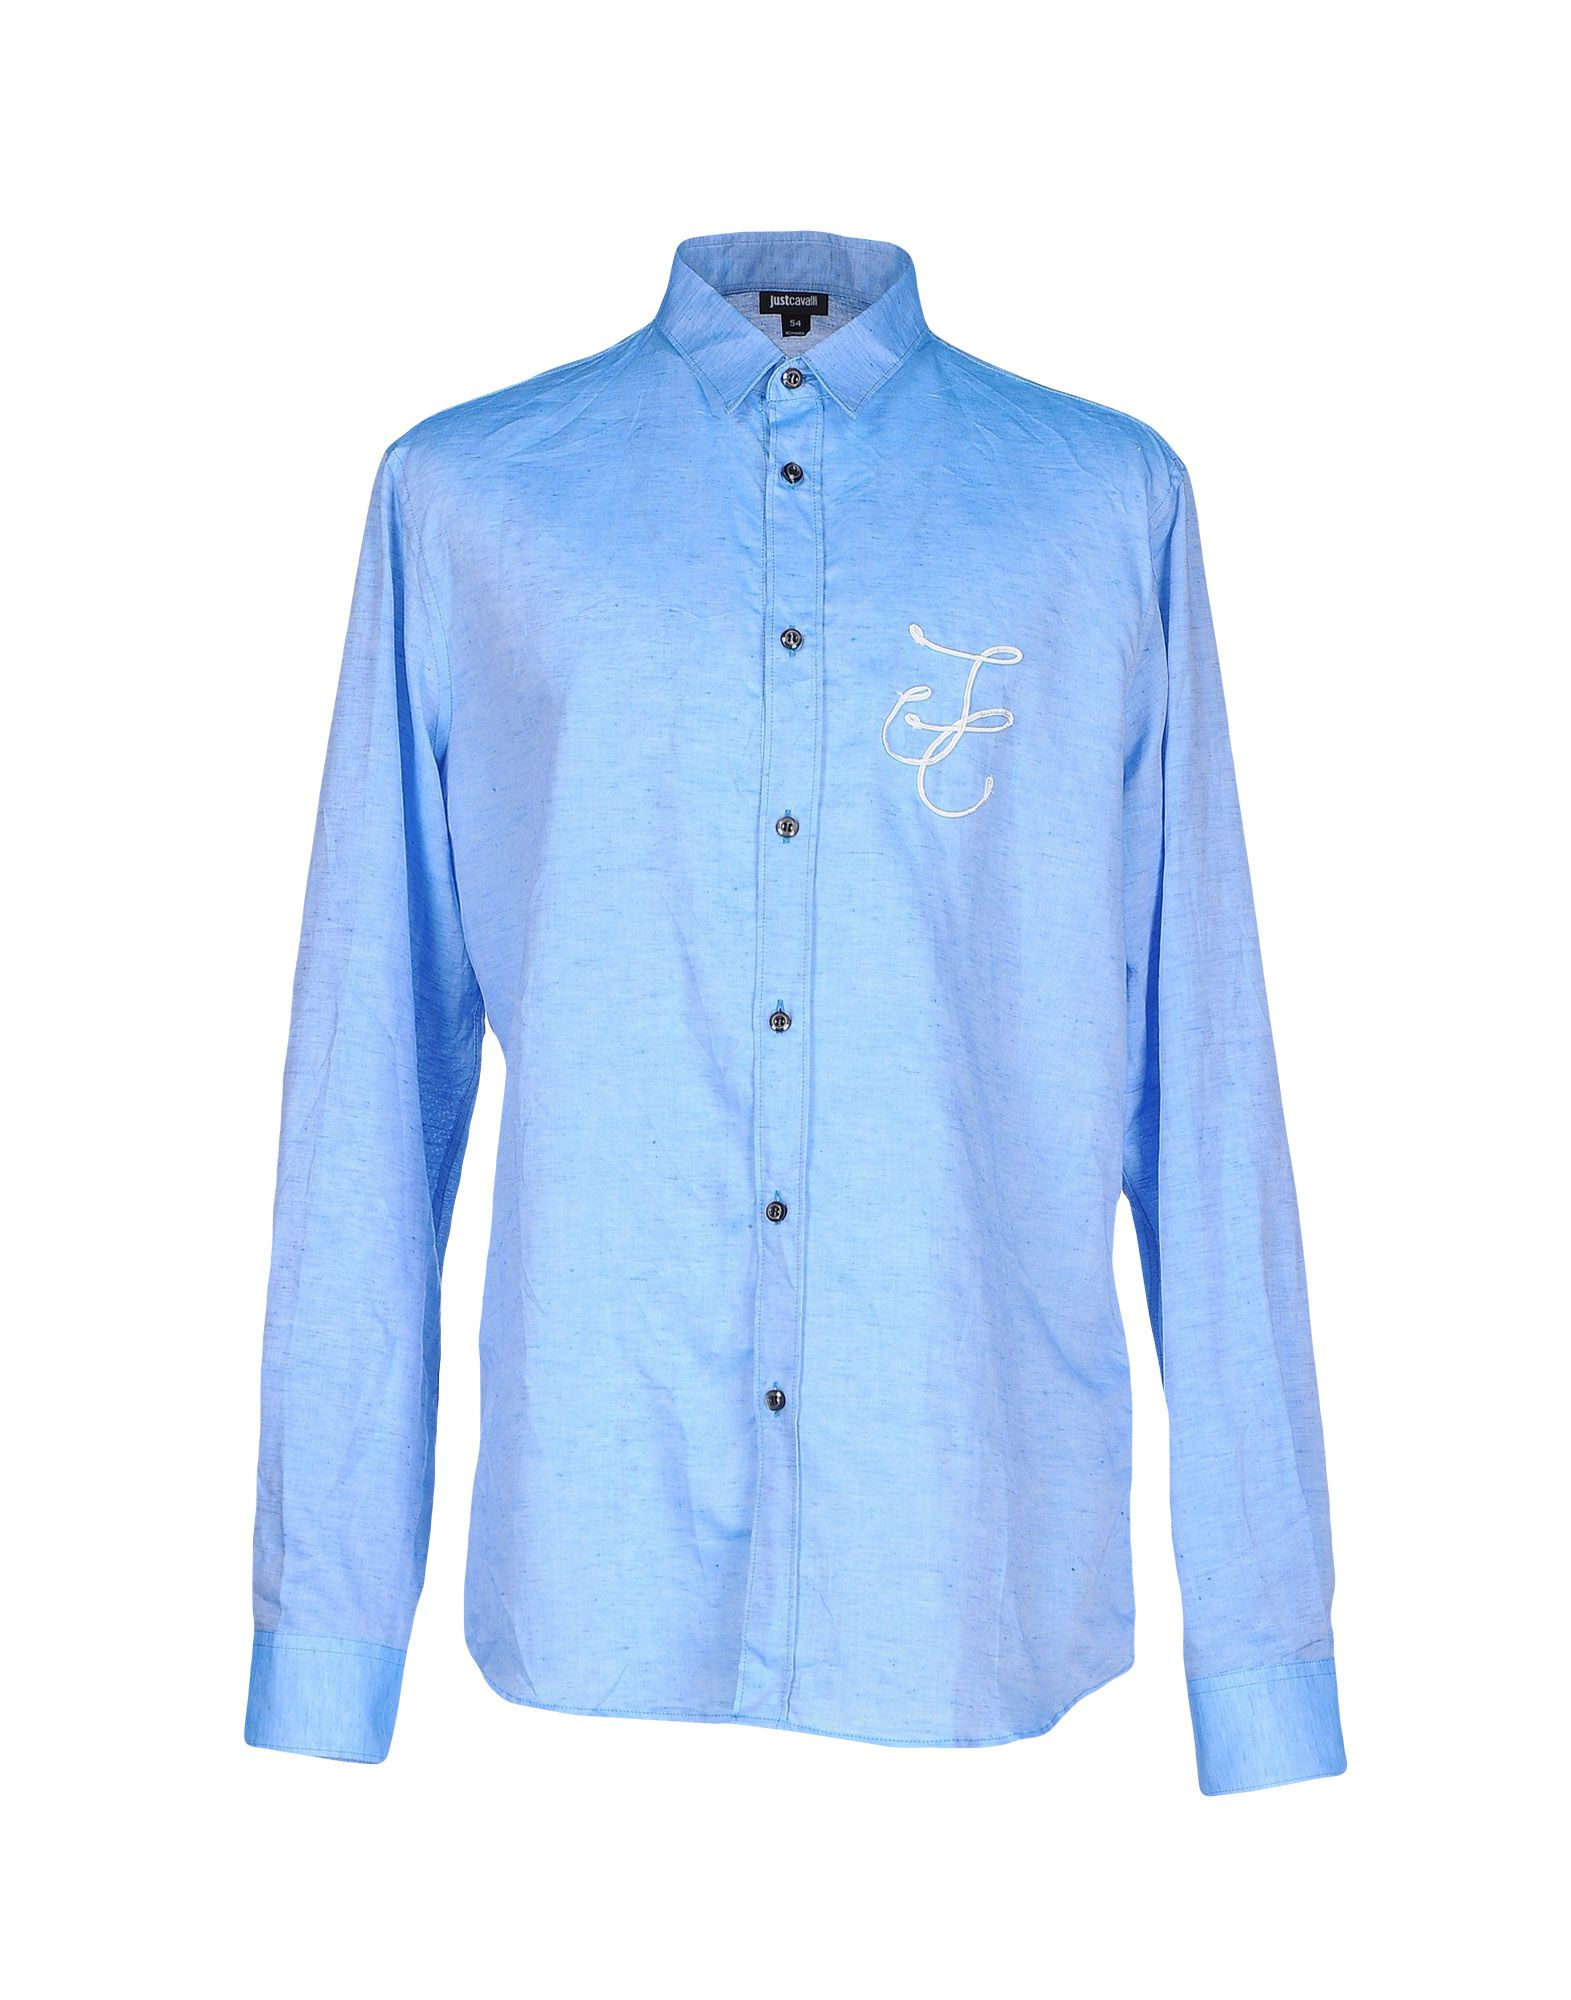 Camicia In Lino Just Cavalli Uomo - Acquista online su